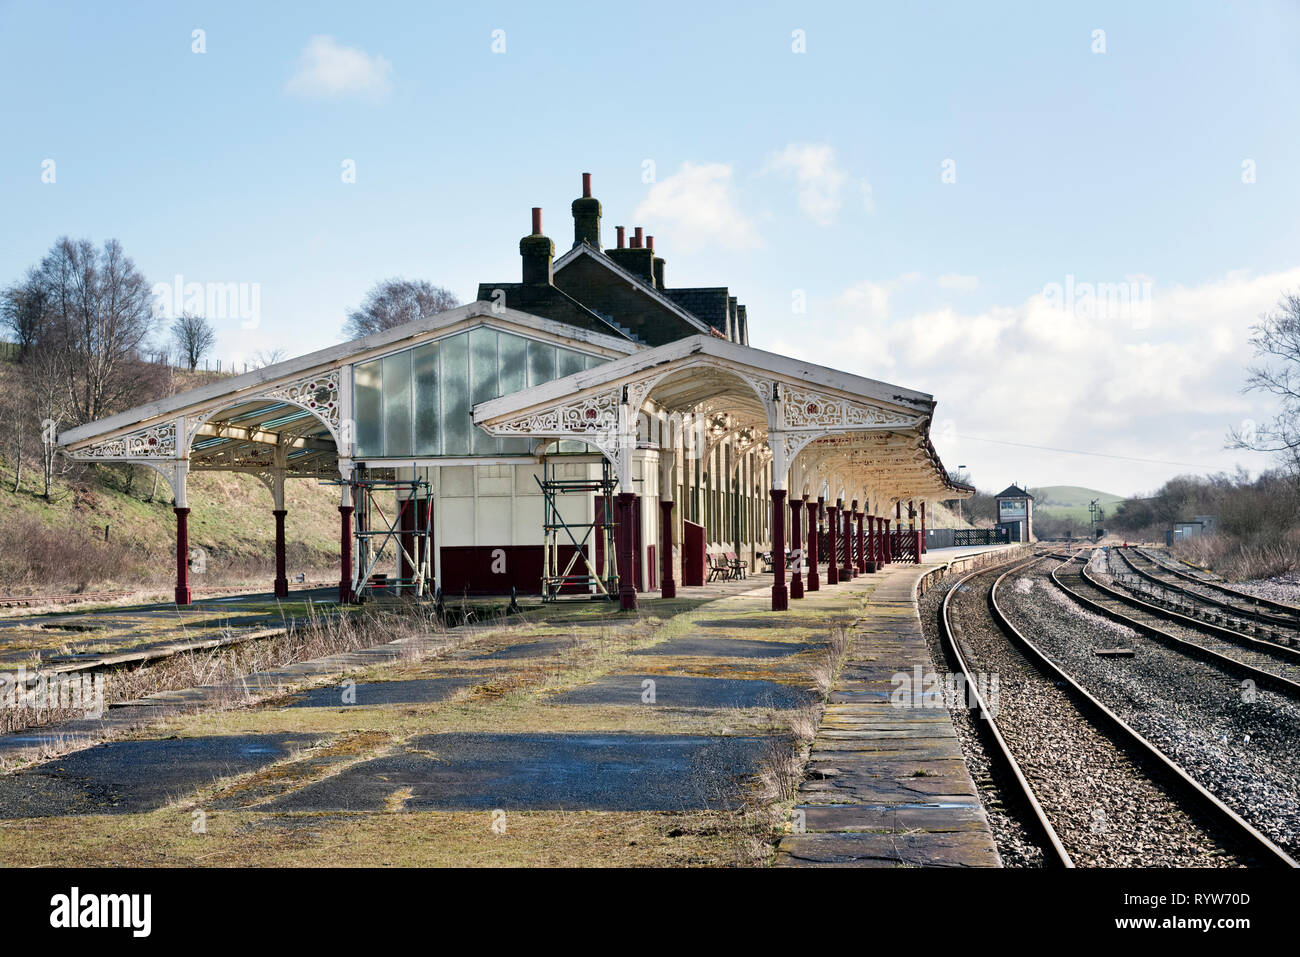 Hellifield railway Station, North Yorkshire. The Grade II listed building was built by the former Midland railway Company in 1880. - Stock Image